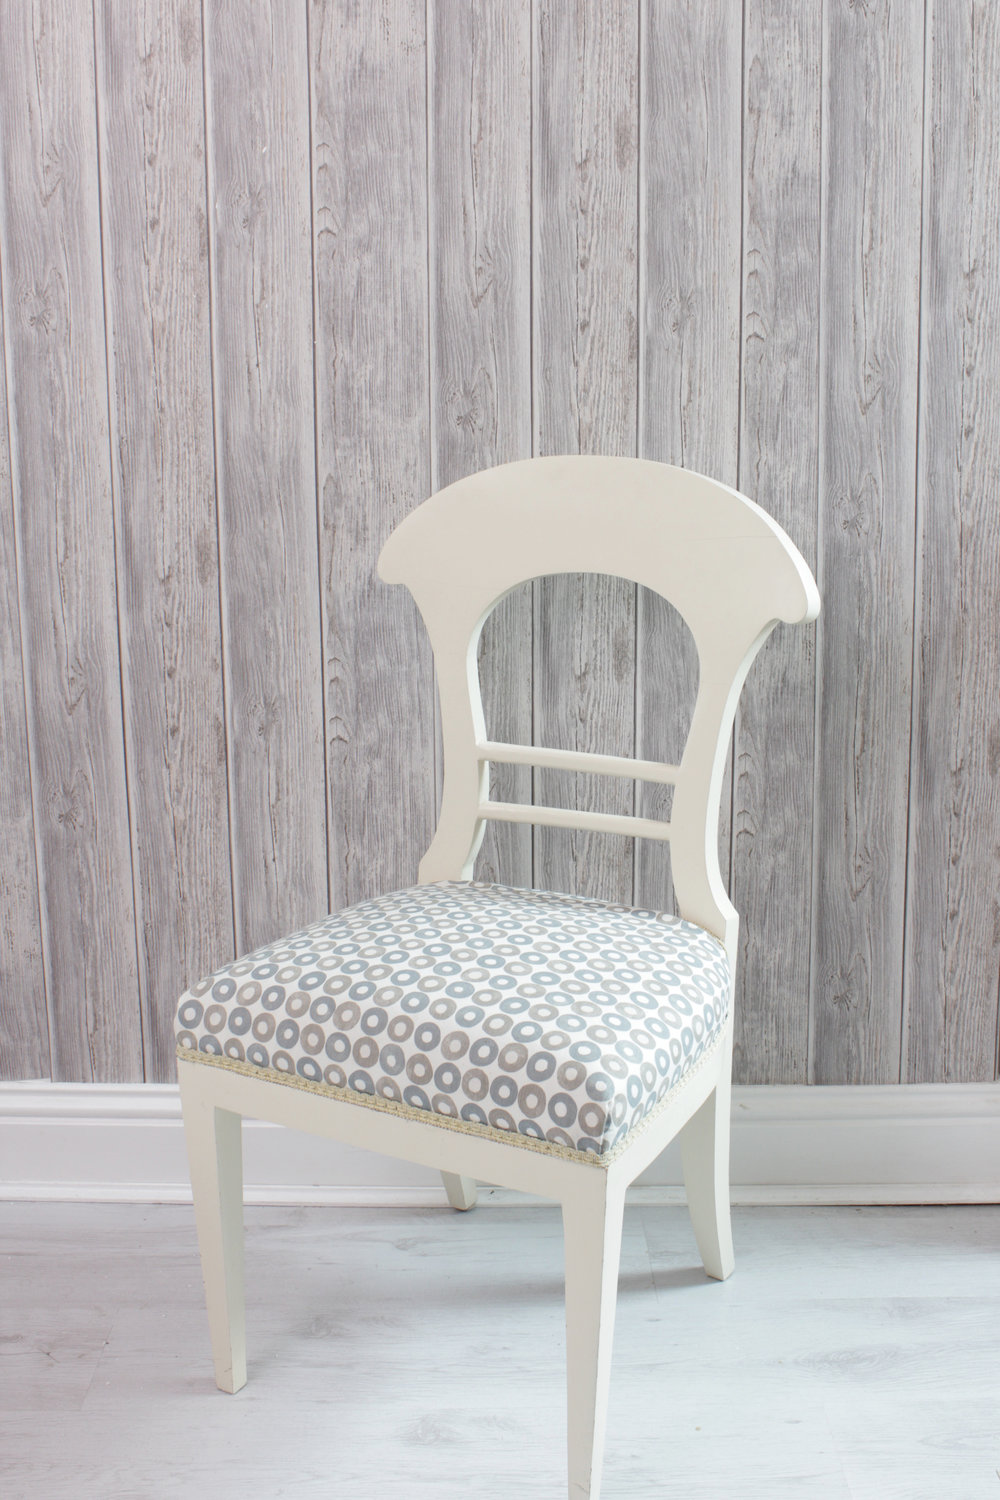 Chair before its chalk paint makeover by Hesters Handmade Home